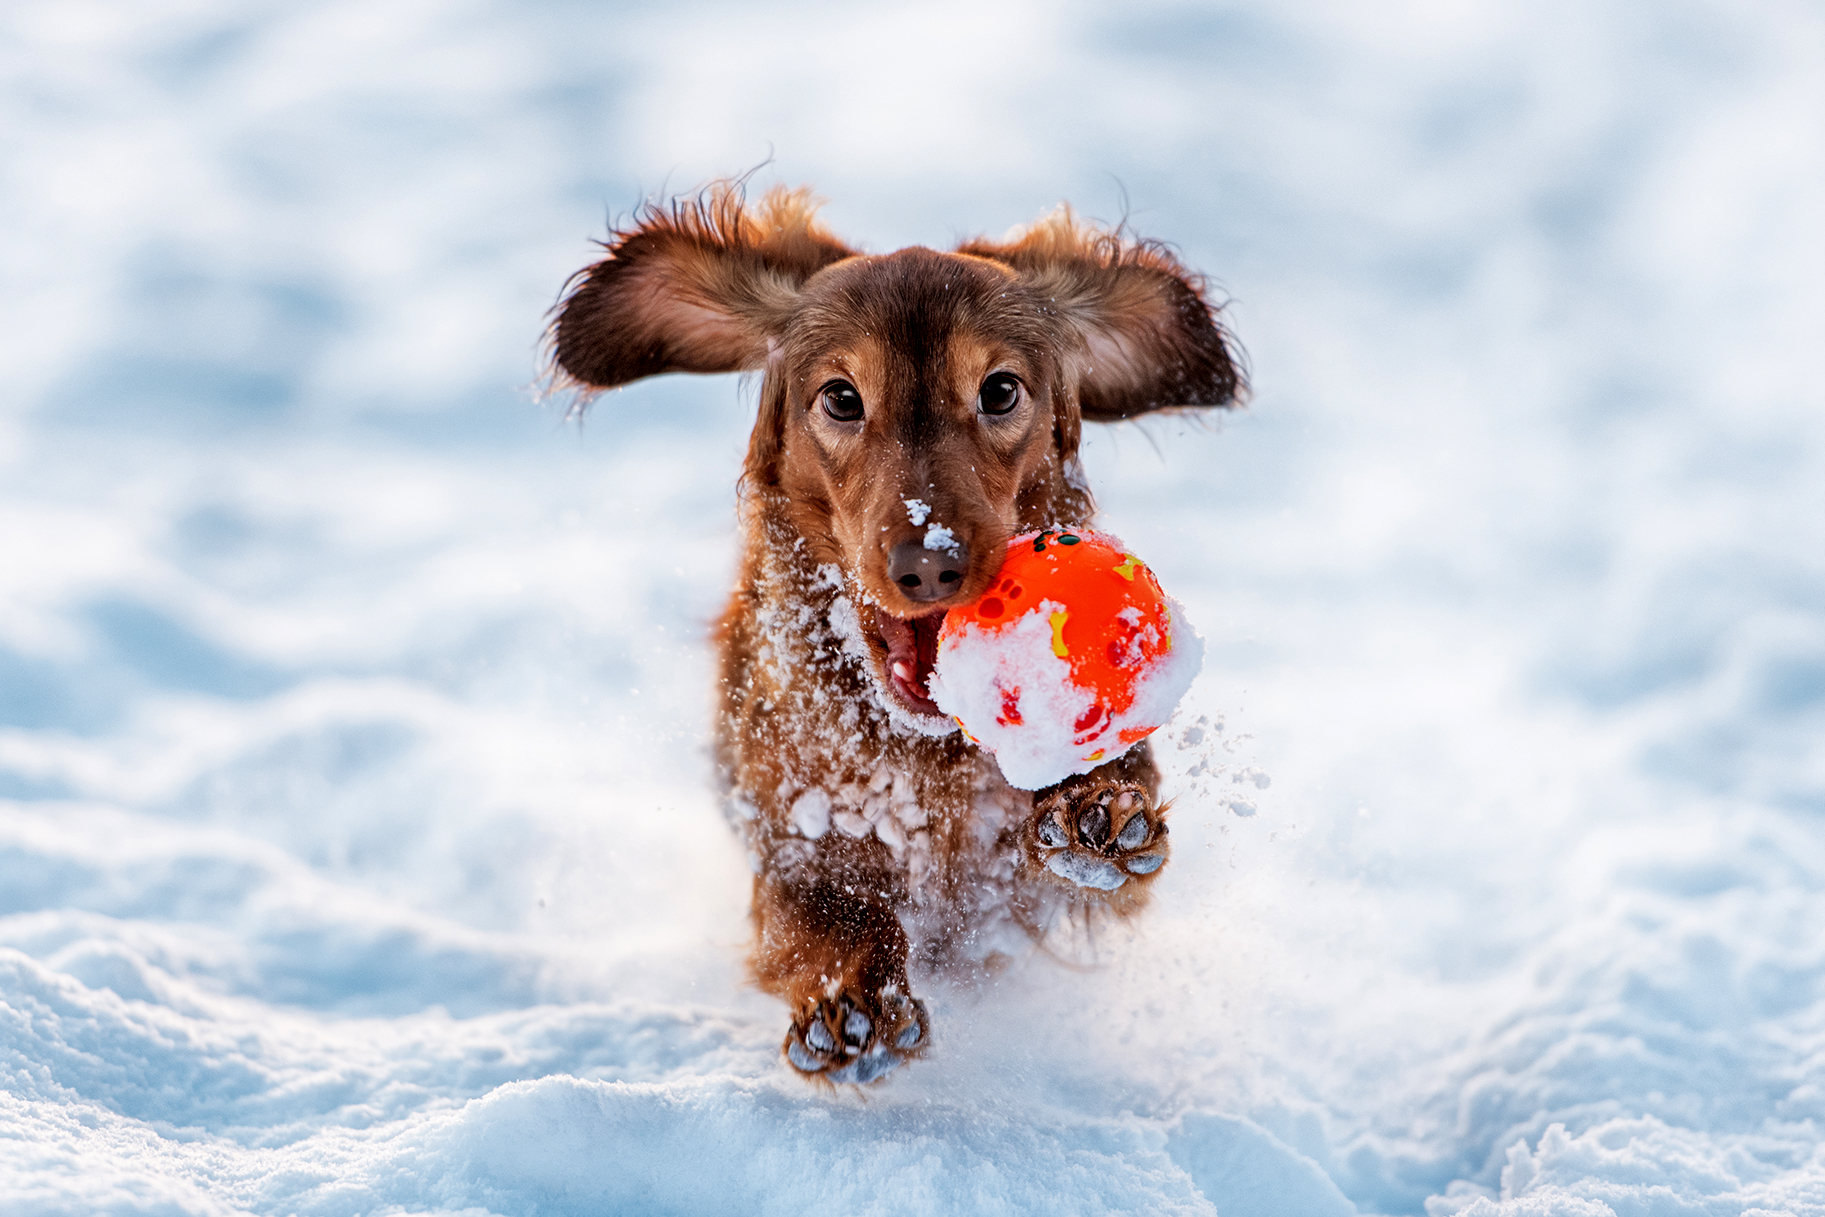 Wags to Wiskers 10 Tips for Winter Canine Care